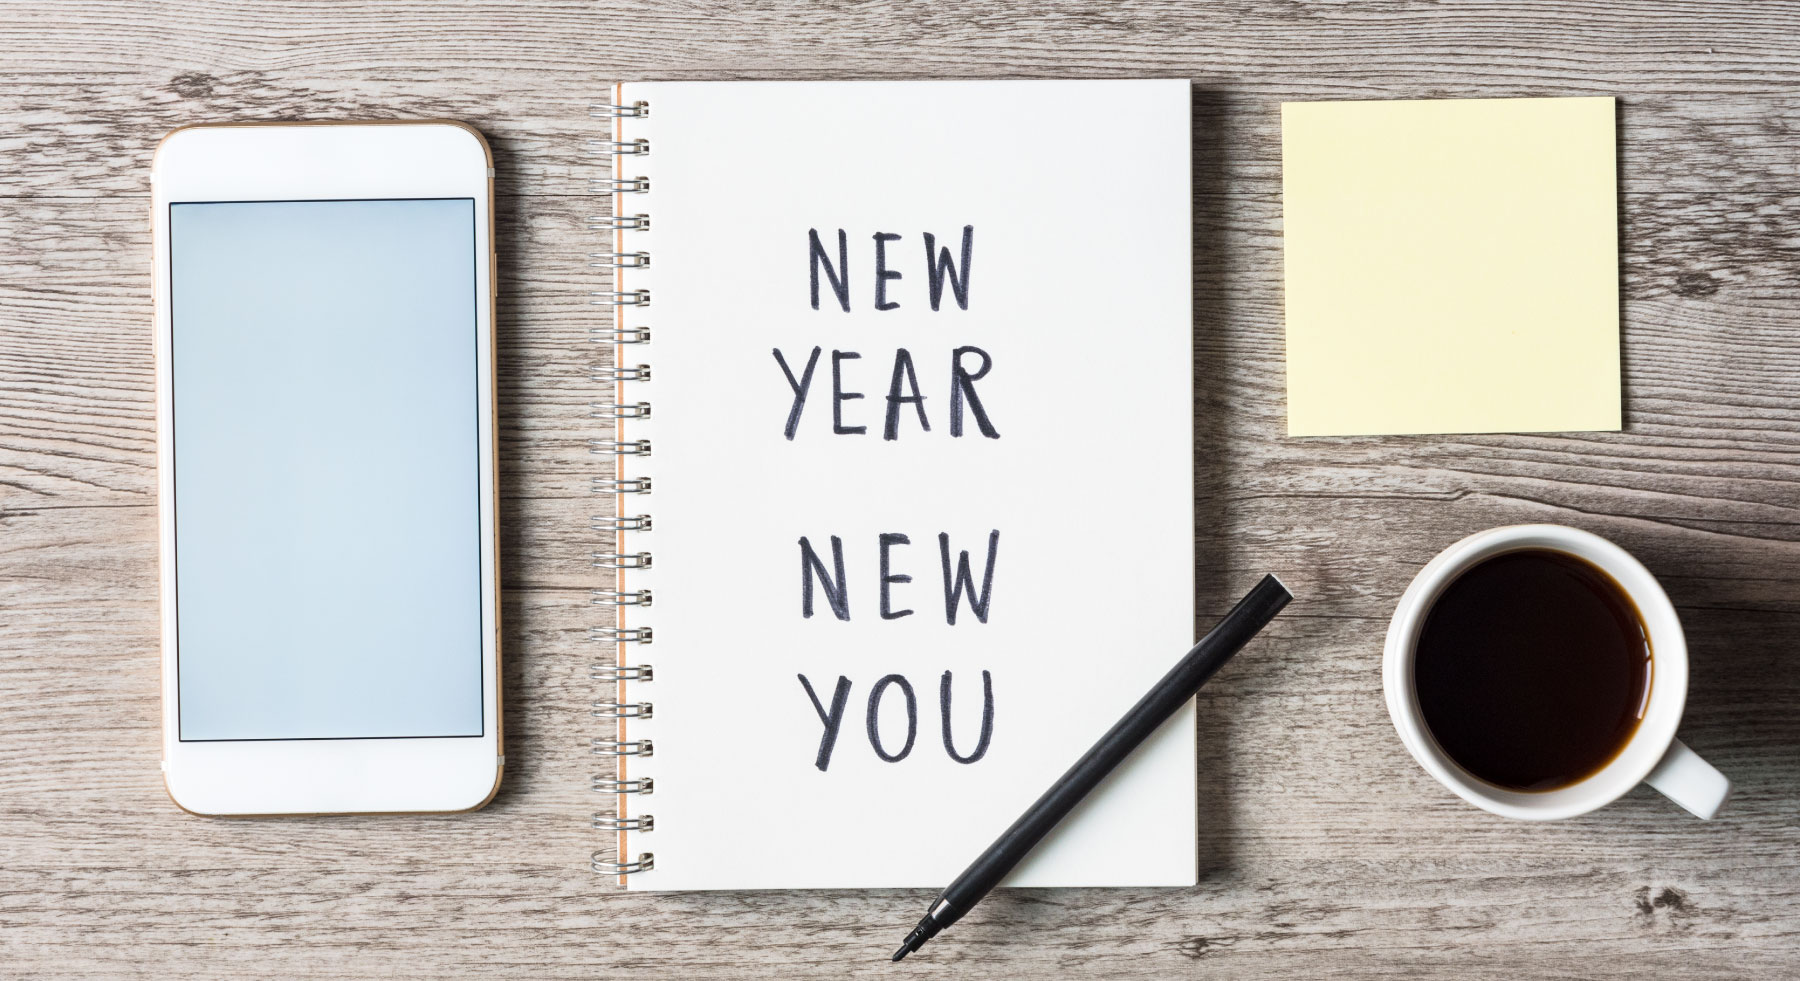 Keeping Your New Year's Resolutions